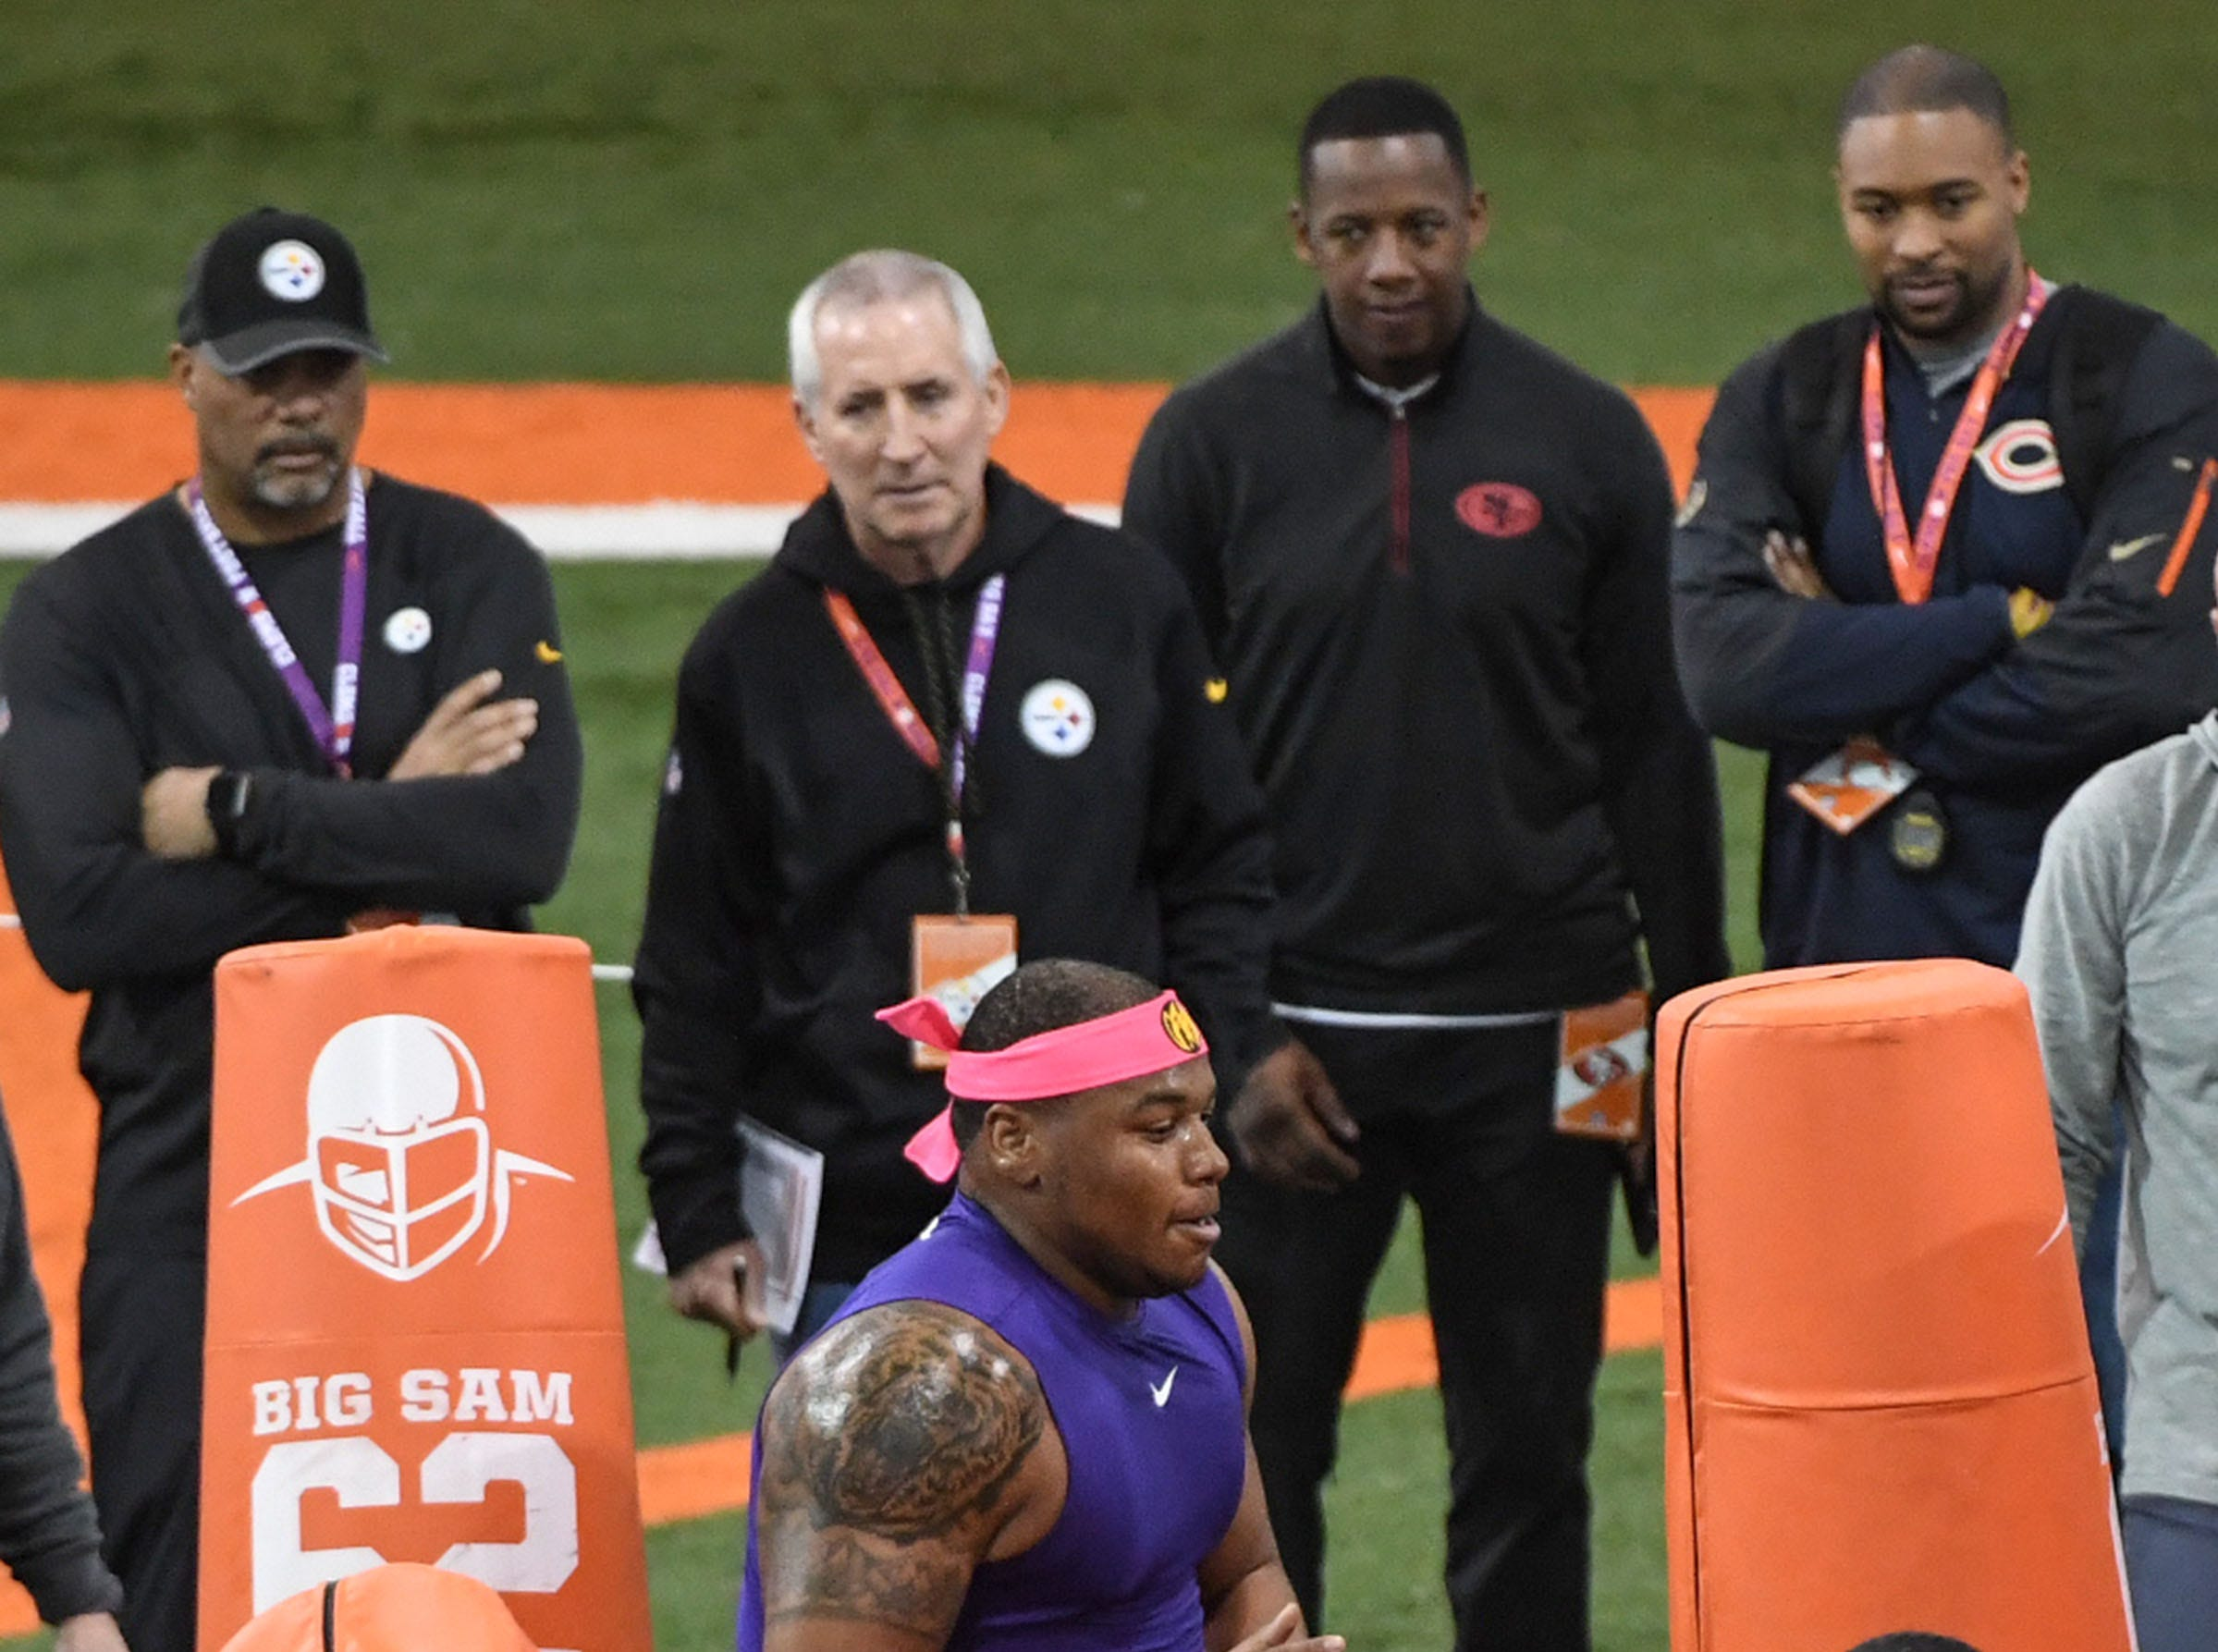 Defensive lineman Dexter Lawrence runs through a drill for NFL scouts during Clemson Pro Day at the Poe Indoor Facility in Clemson, S.C. Thursday, March 14, 2019.